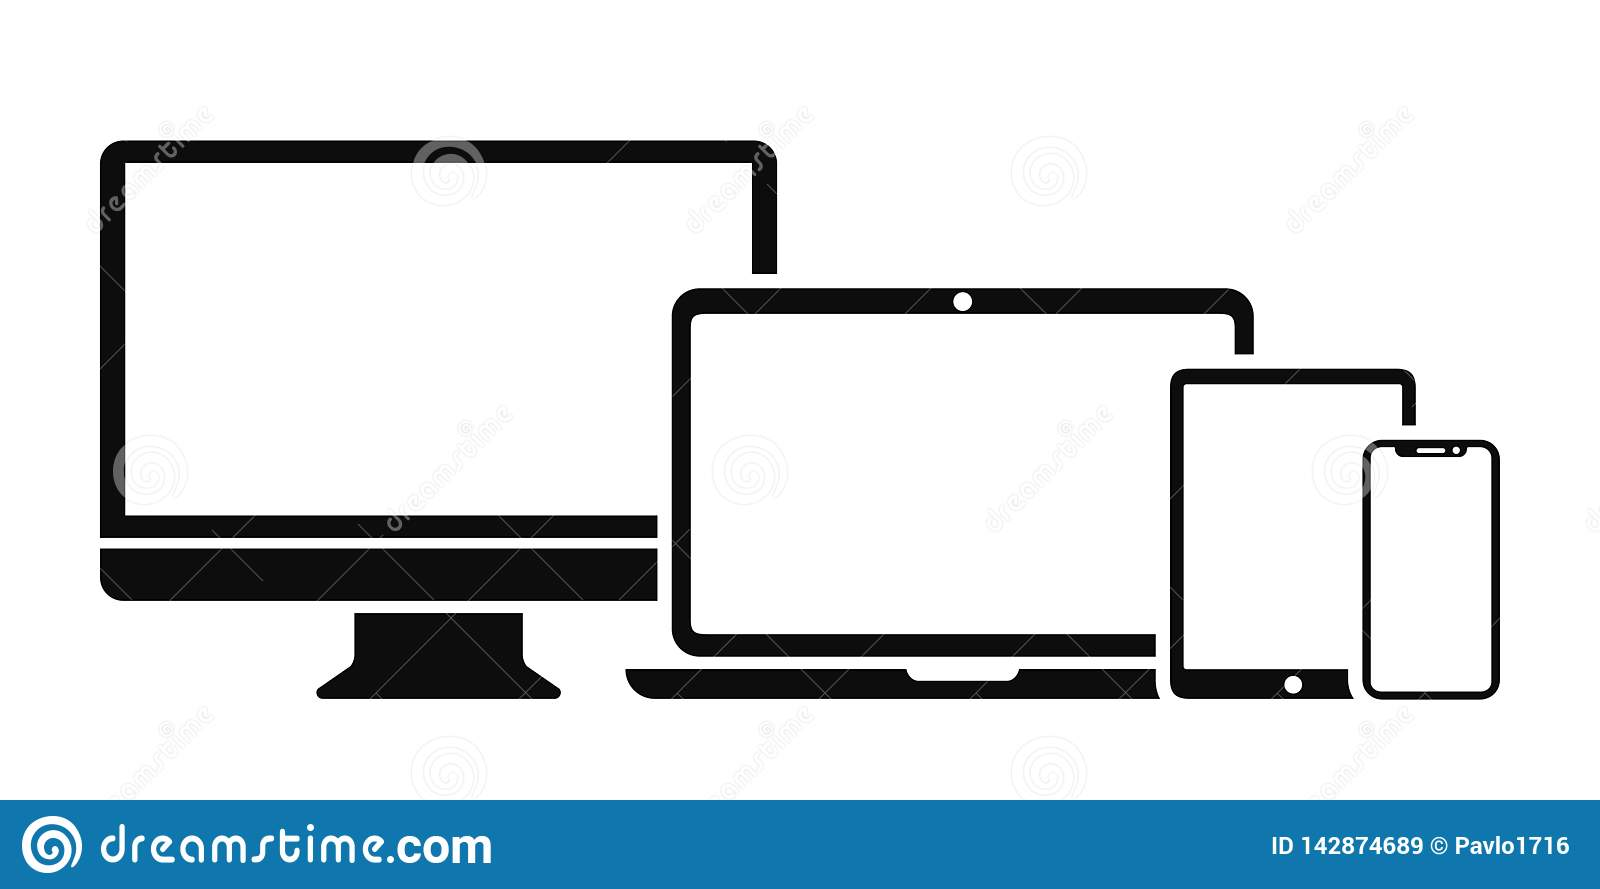 Set technology devices icon: computer, laptop, tablet and smartphone screen icon for web development apps and websites